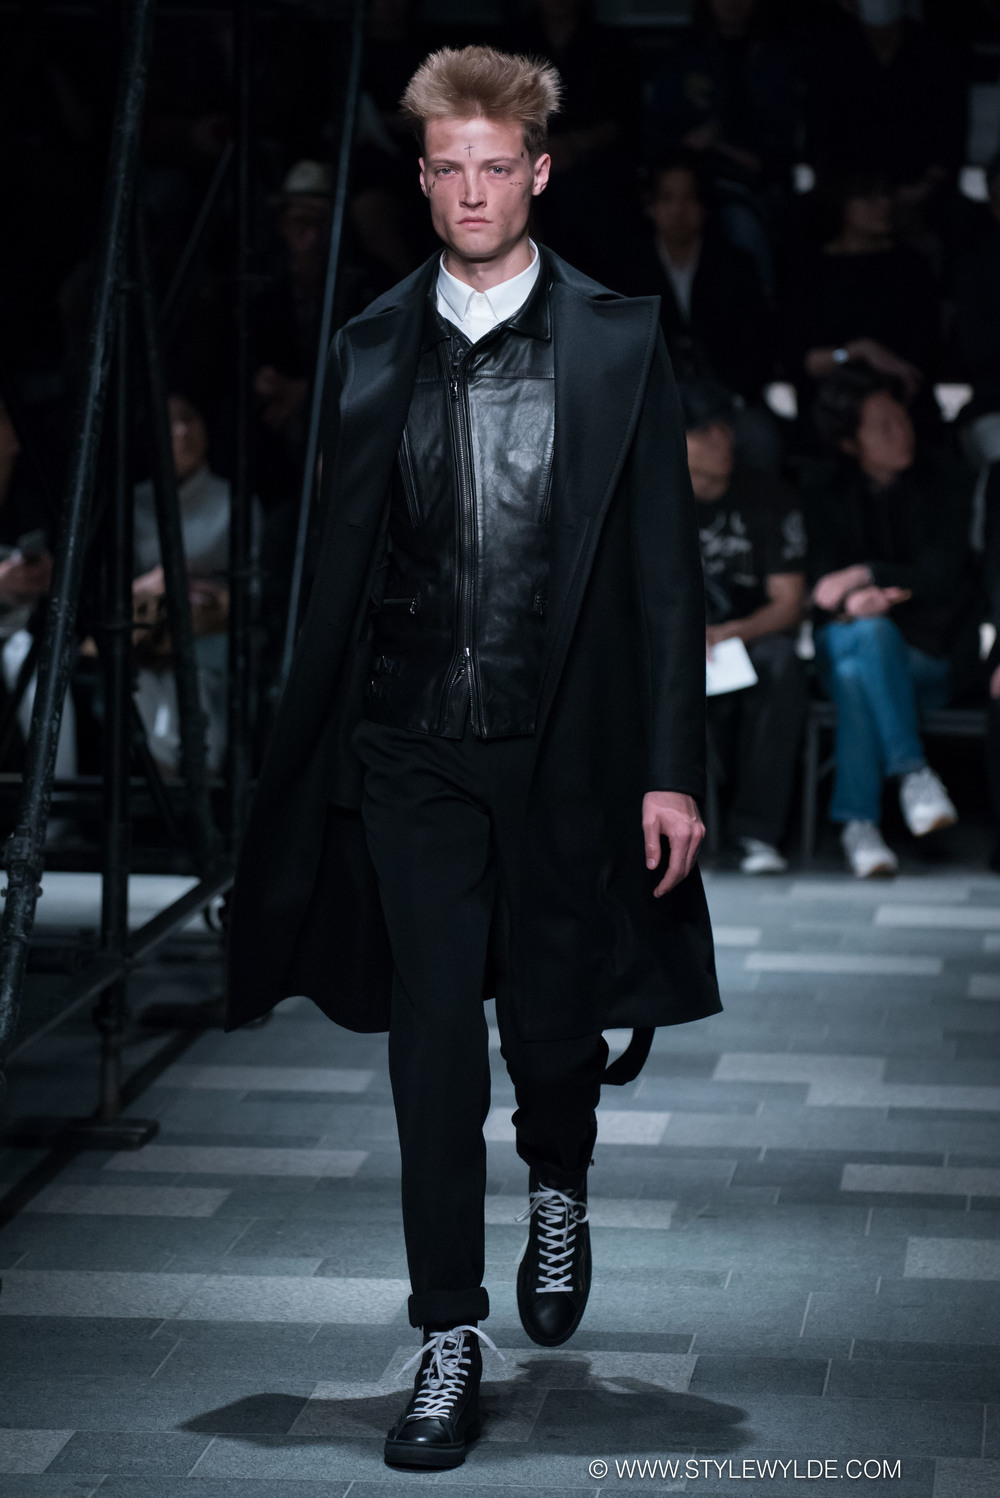 stylewylde_5351_pour_les_hommes_fw_2016-13.jpg